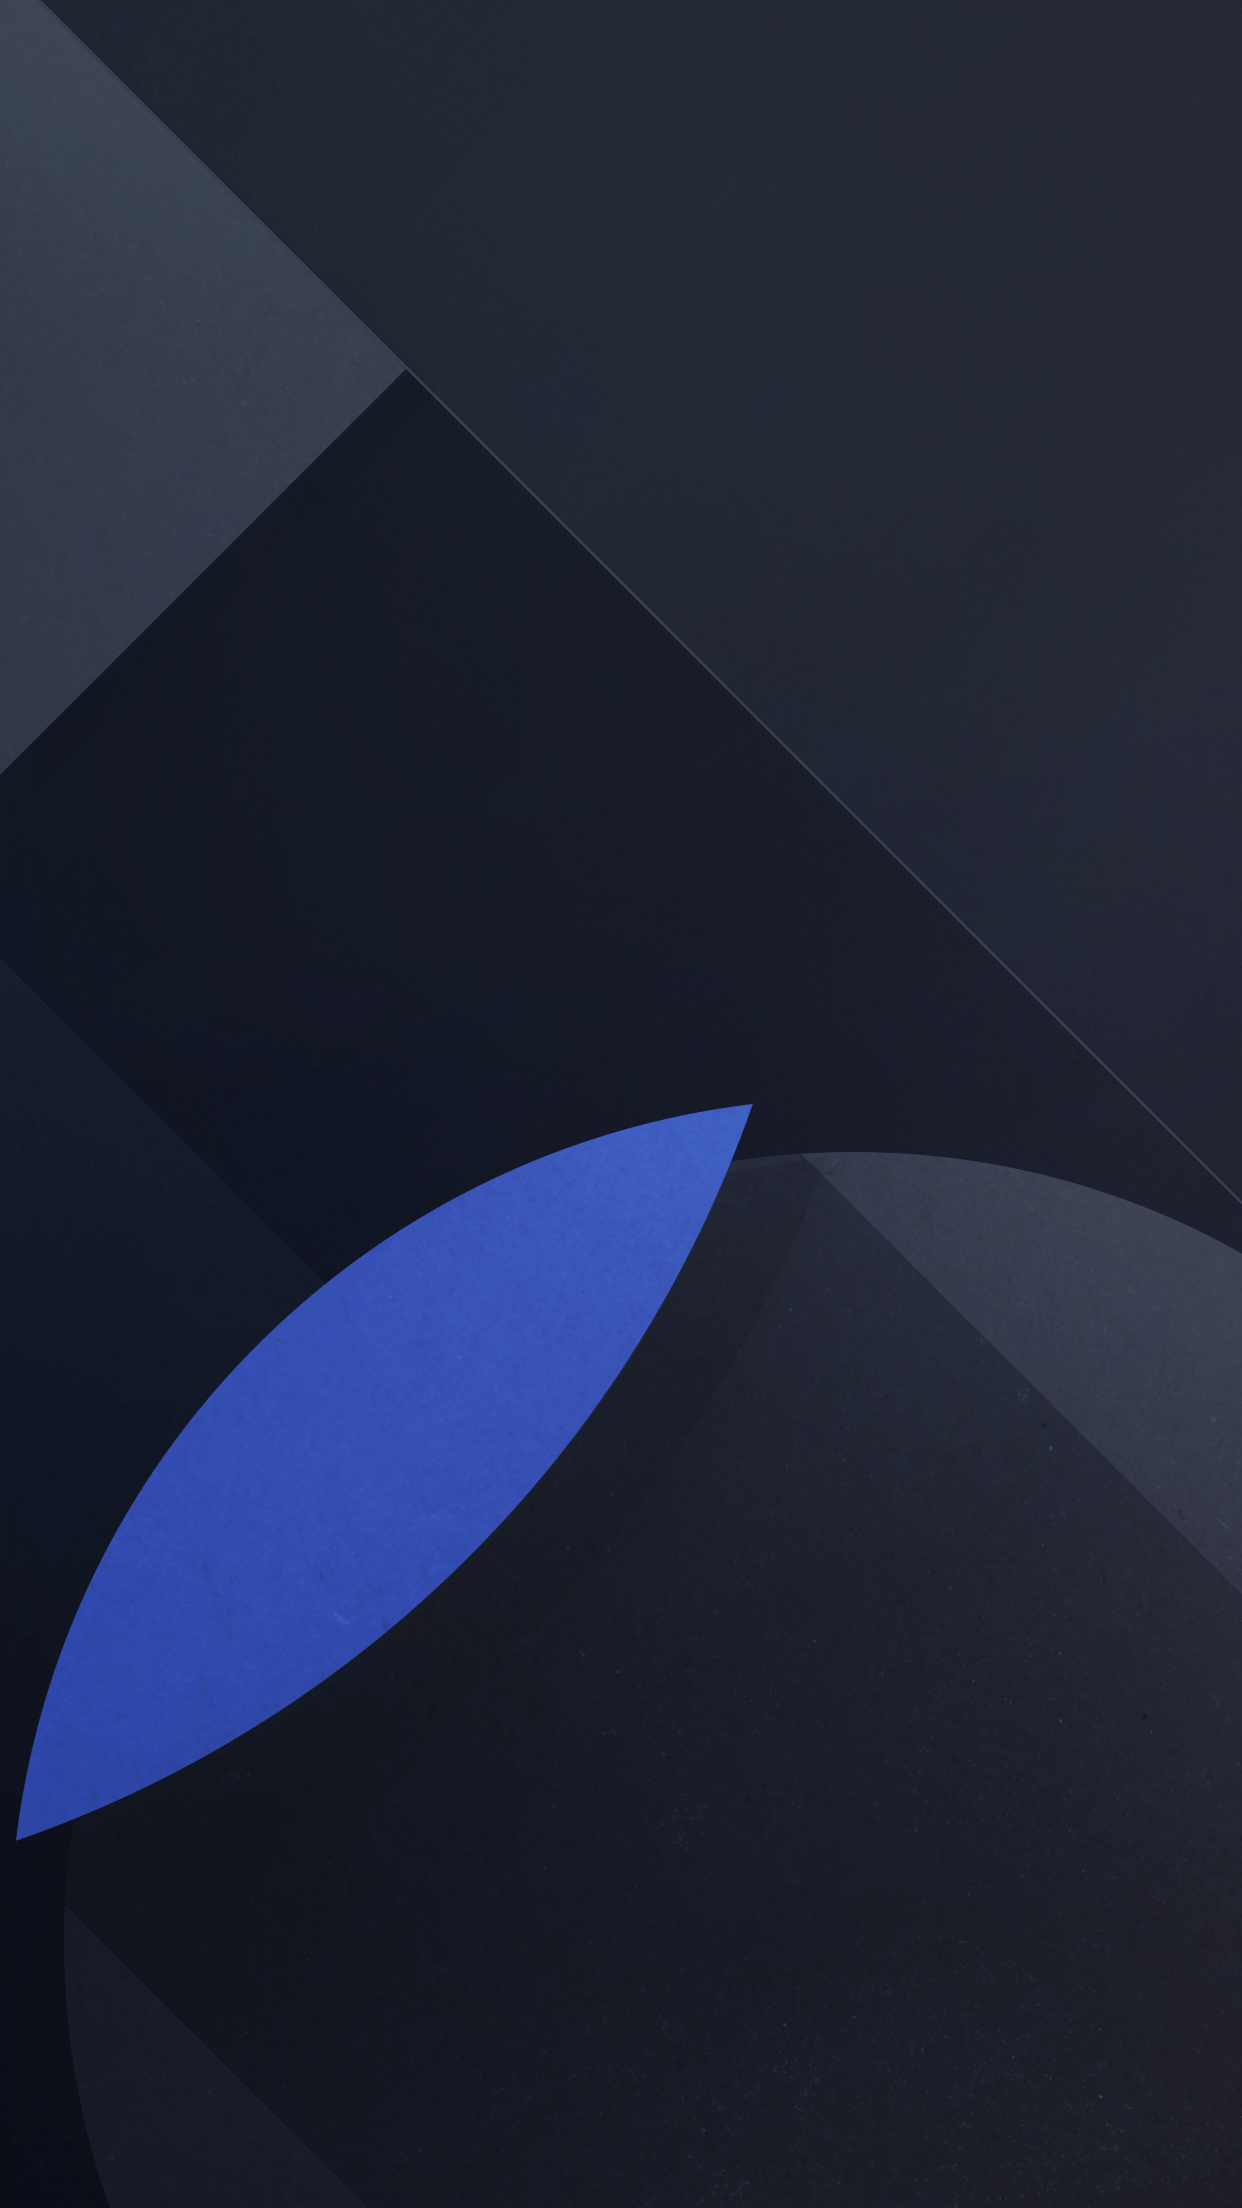 Blackberry Priv Geometric Wallpapers For IPhone